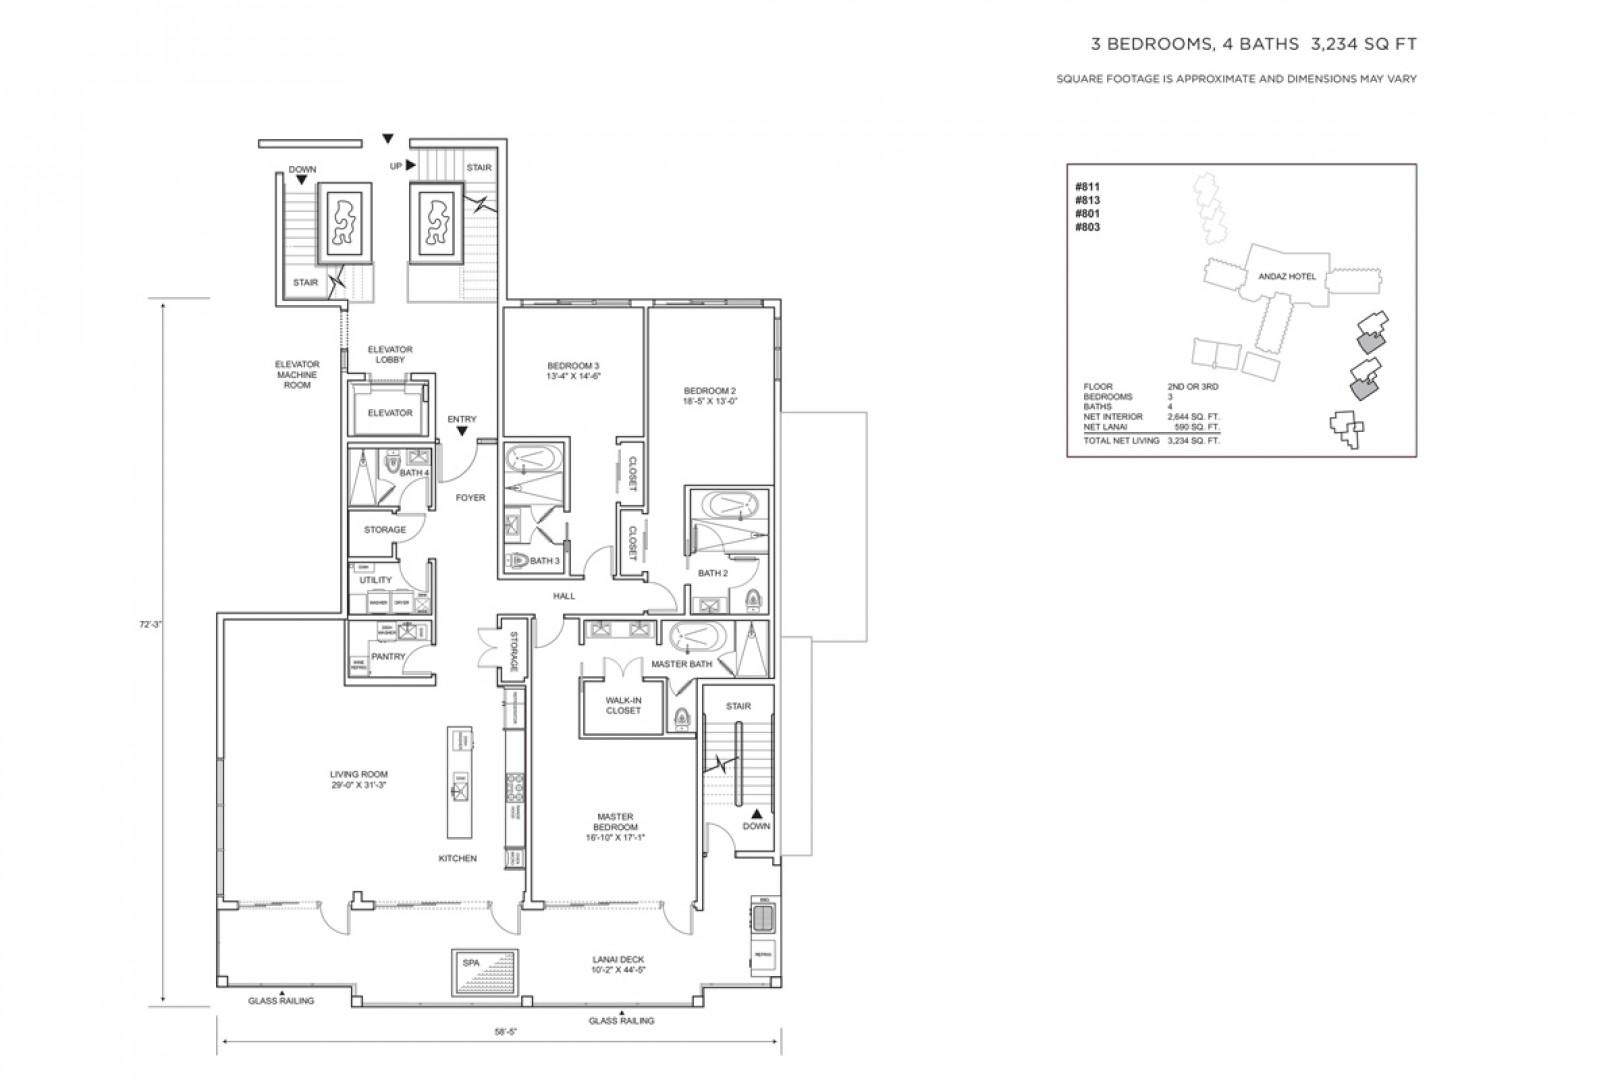 SeaSpirit Villa 811 Floor Plan